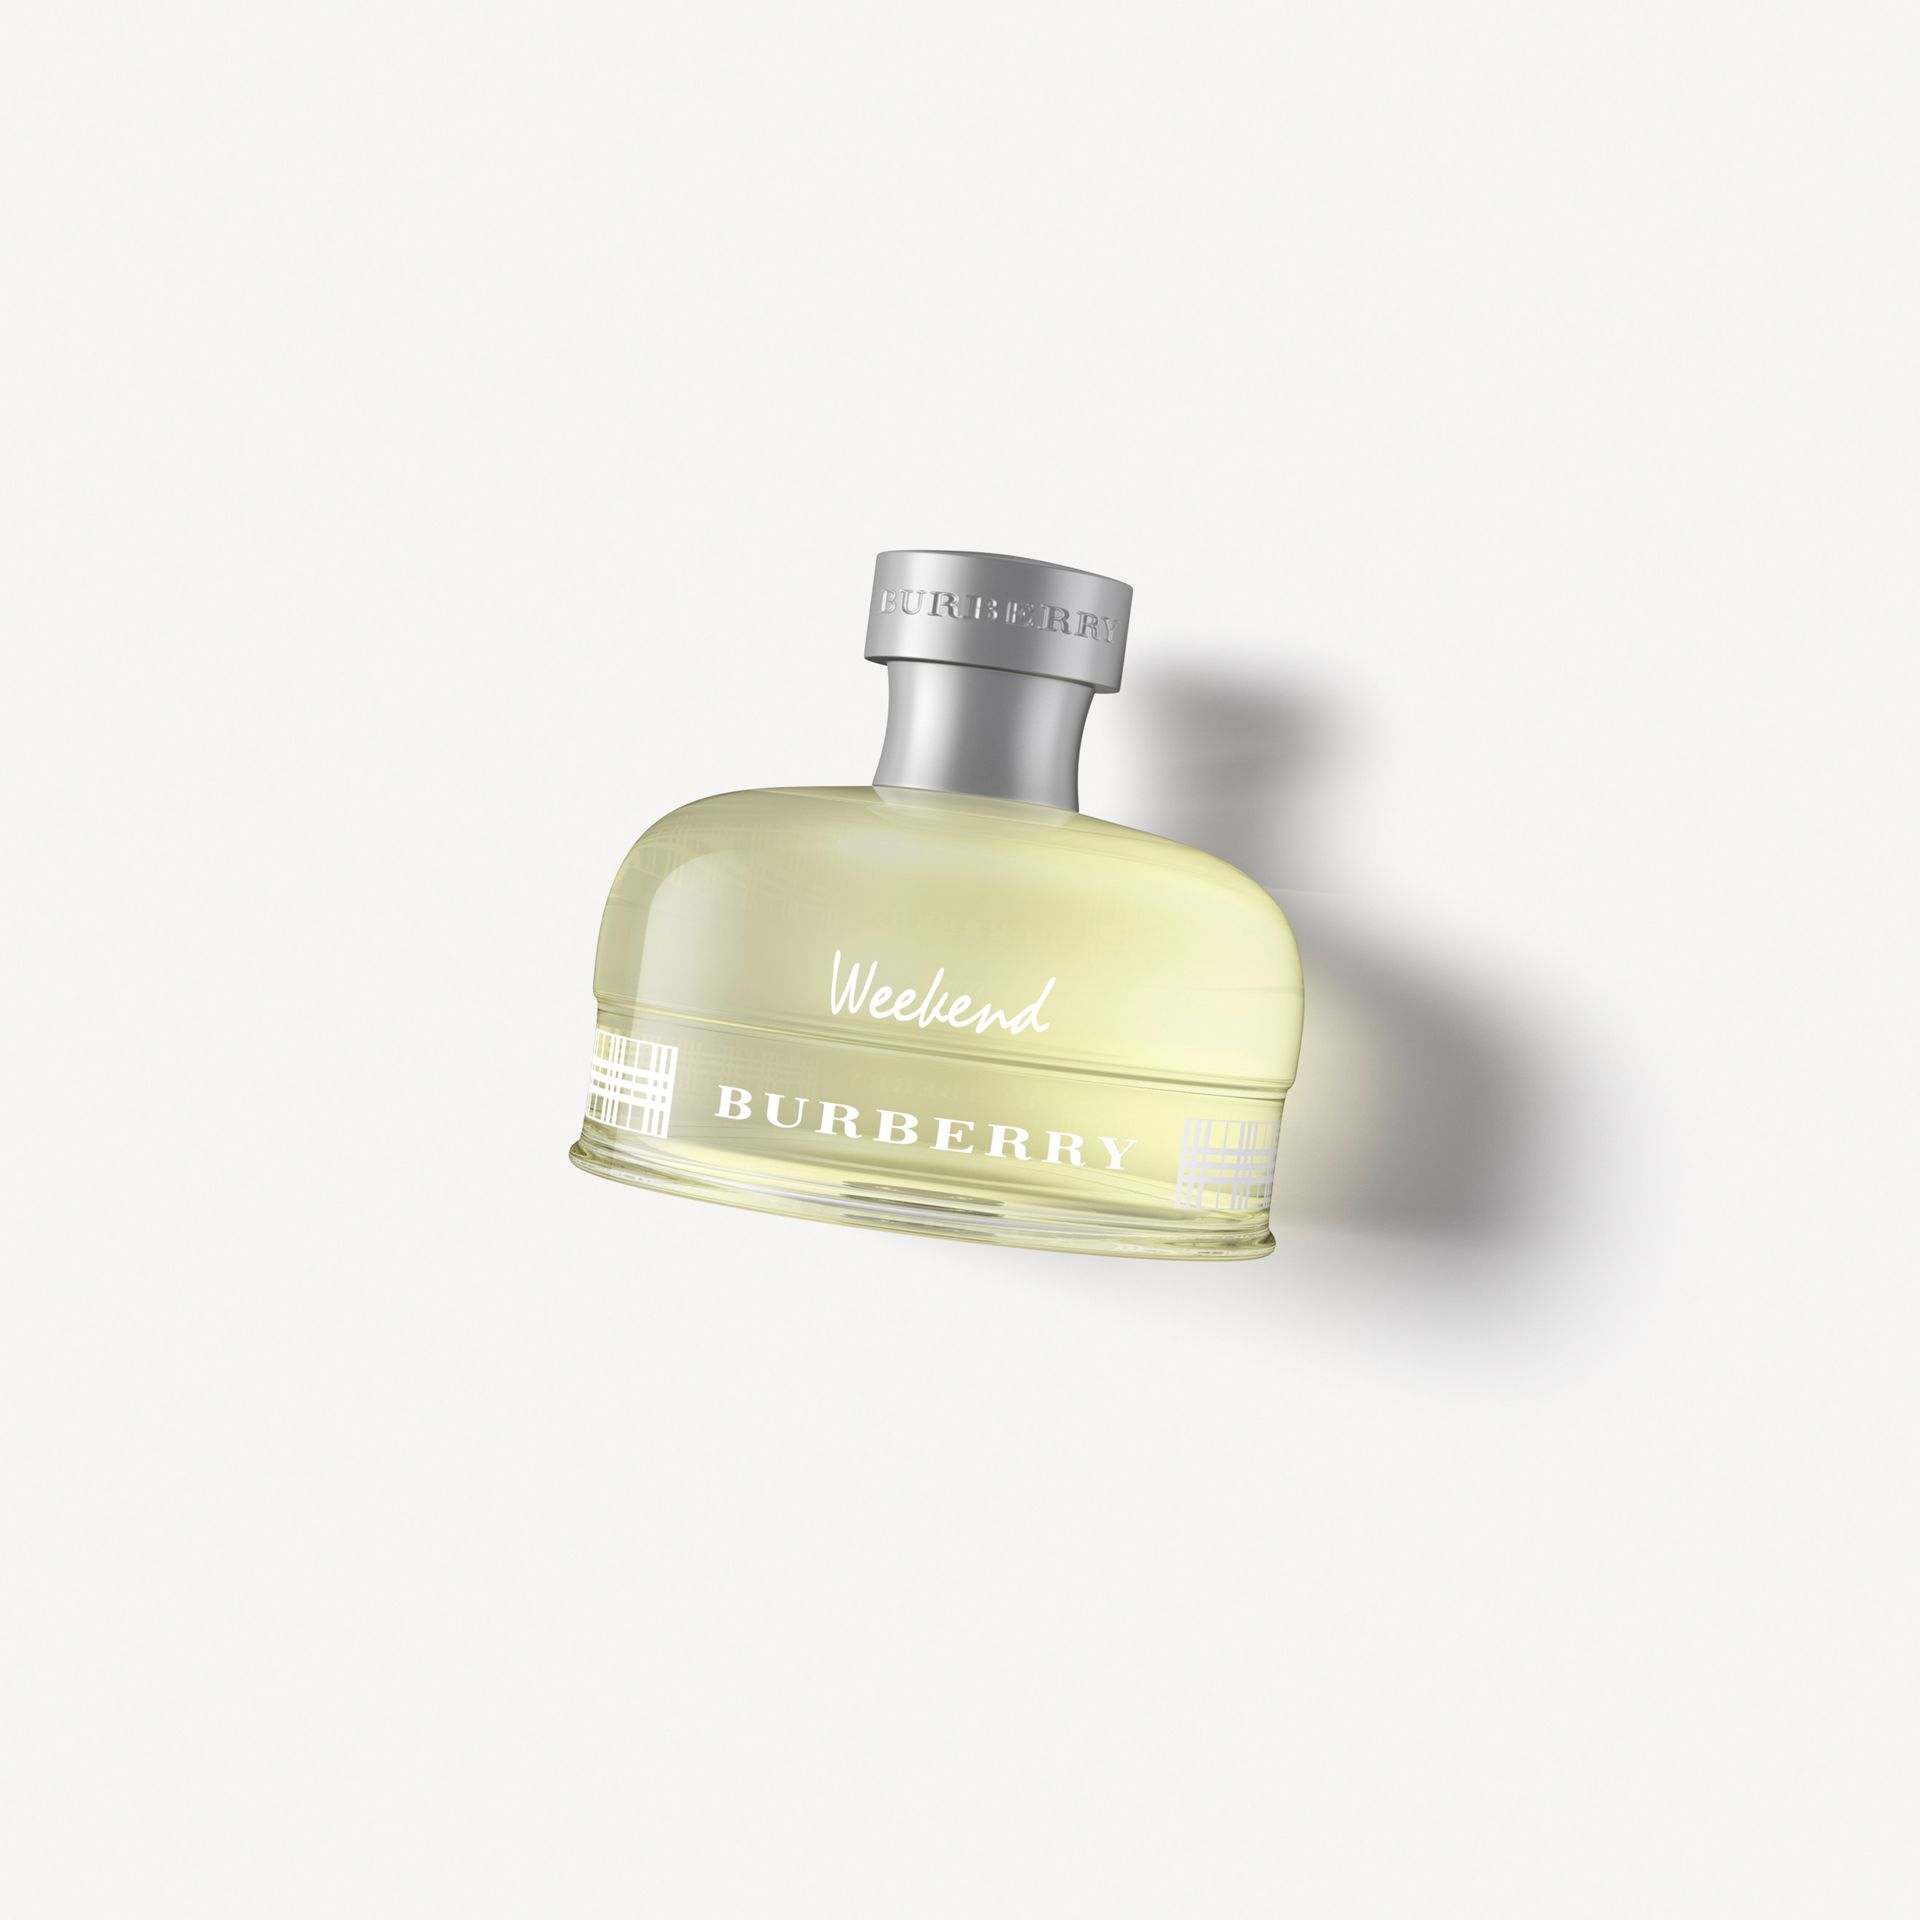 Burberry Weekend Eau de Parfum 100ml - Women | Burberry Singapore - gallery image 1